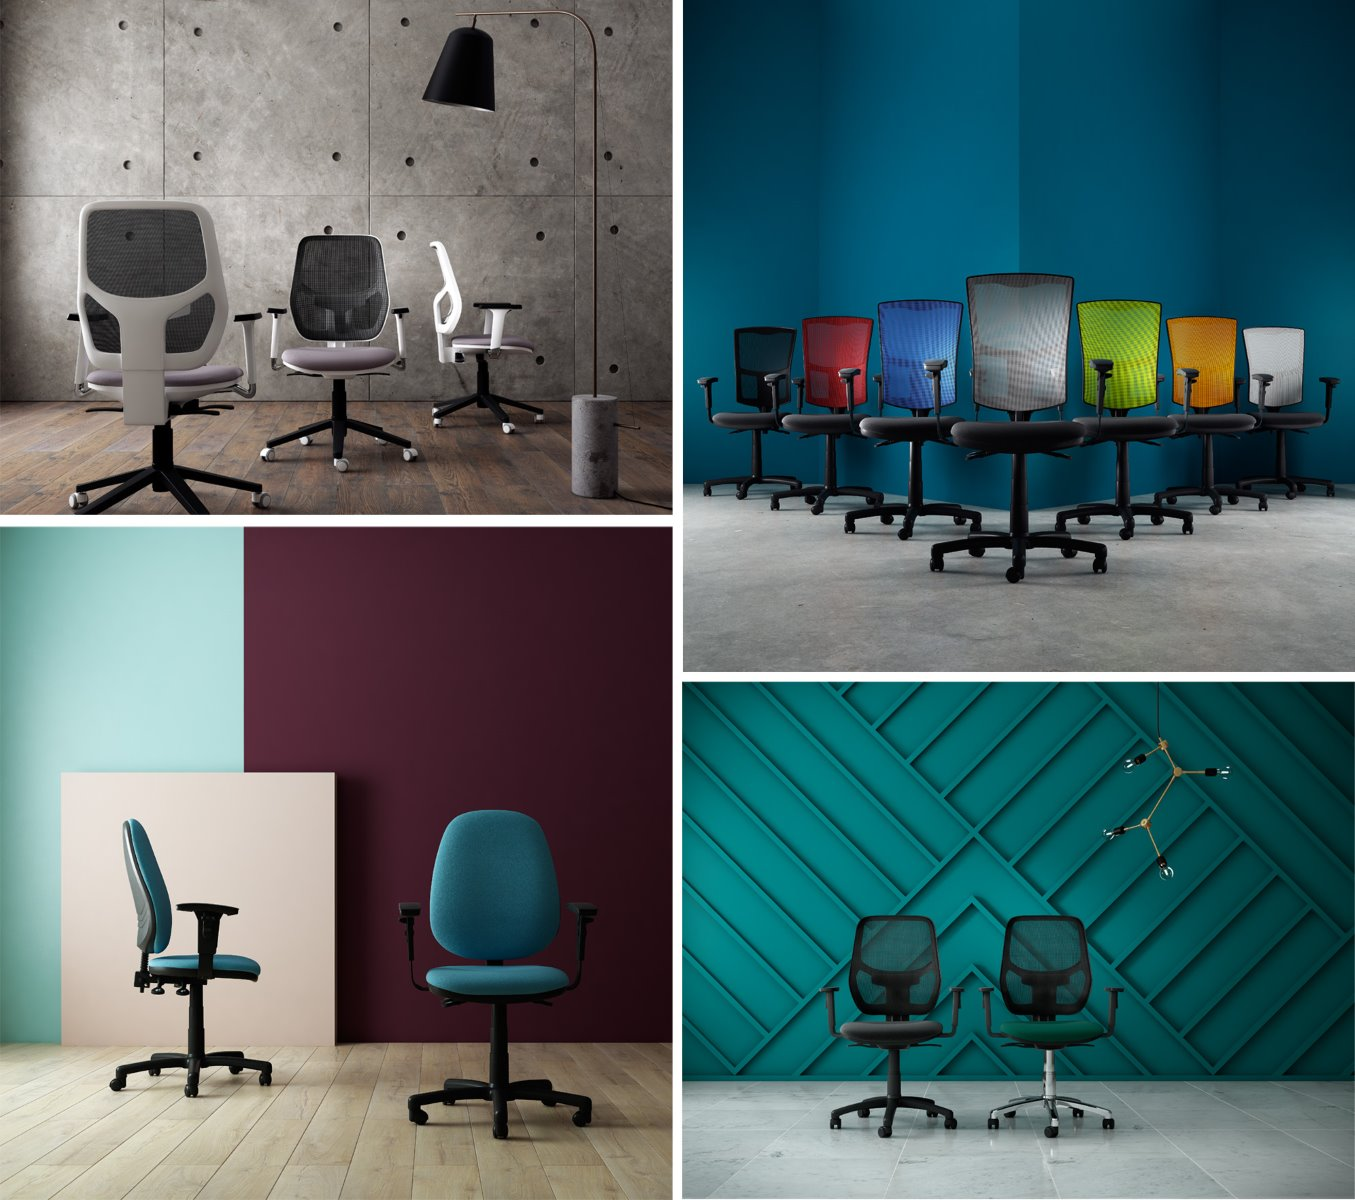 CGI_chairs_office_creative_colourful_product